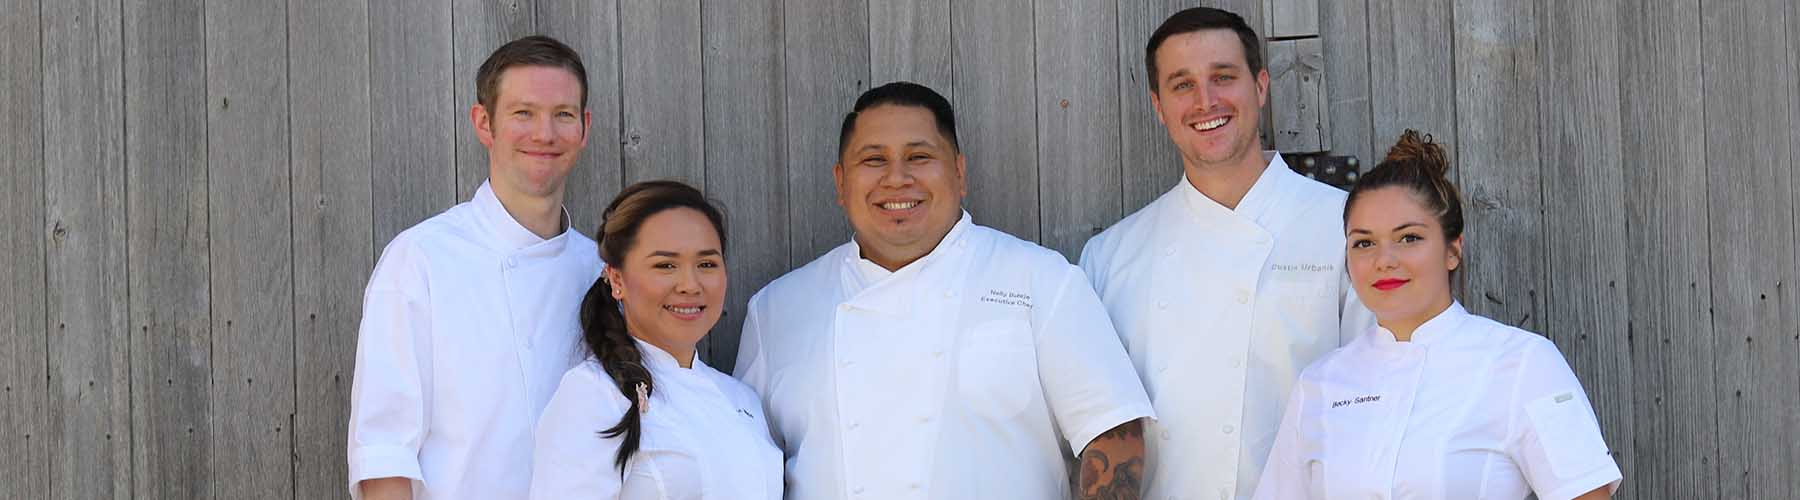 Chefs team together